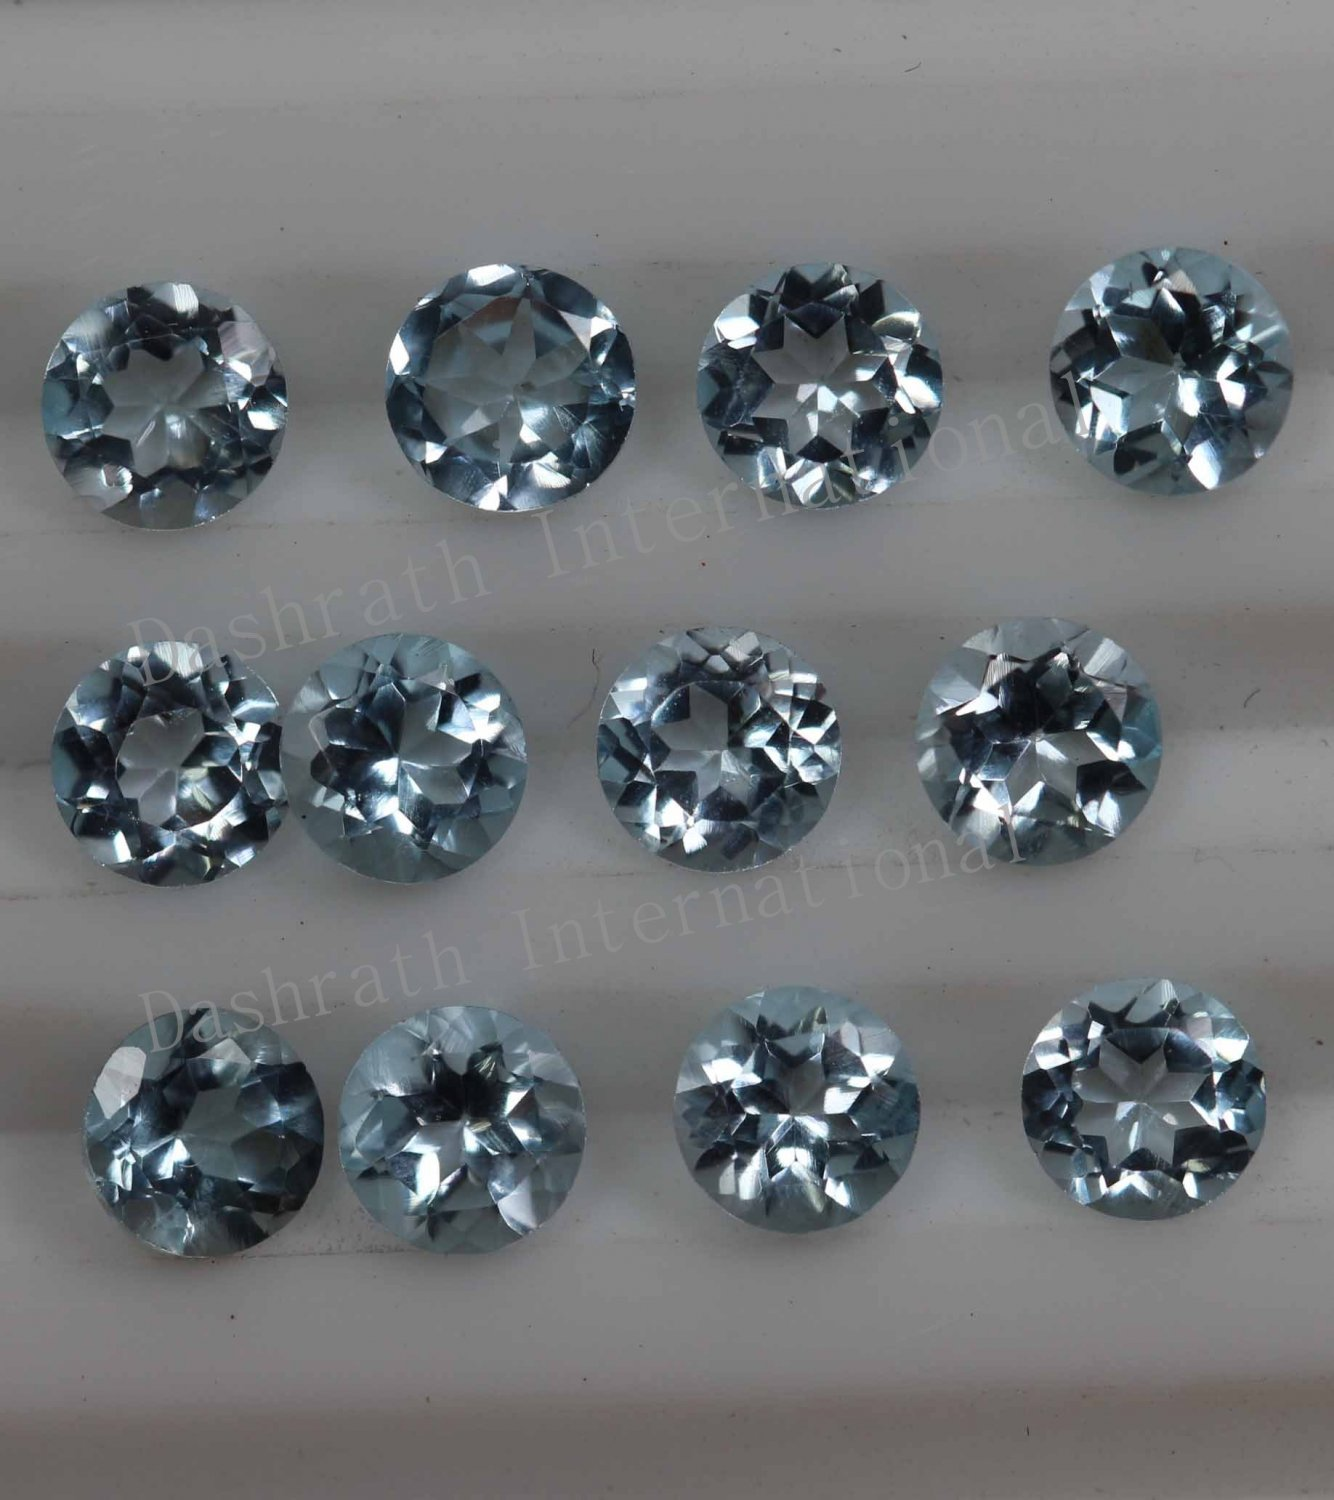 4mmNatural Sky Blue Topaz Faceted Cut Round 2 Piece (1 Pair ) Blue Color  Top Quality Loose Gemstone